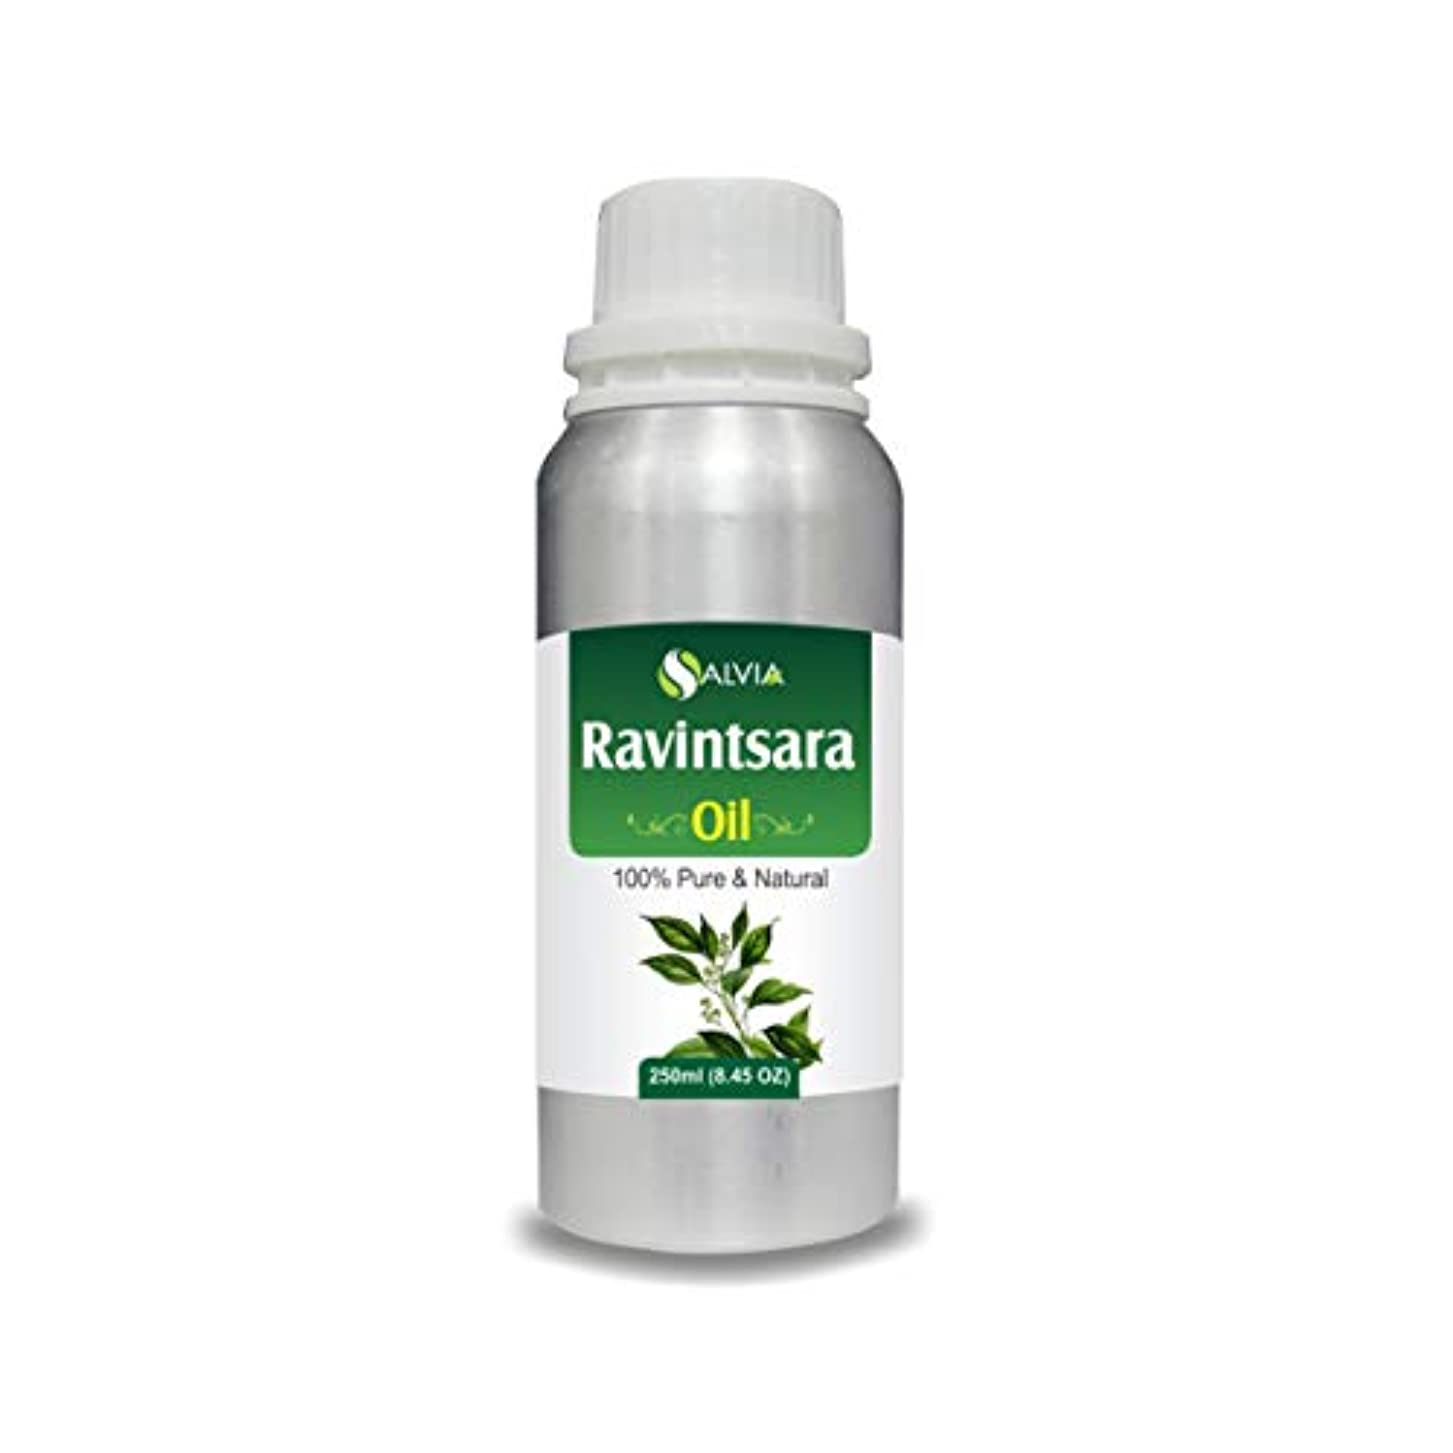 橋脚頑固なアソシエイトRavintsara Oil (Cinnamomum camphora) 100% Natural Pure Undiluted Uncut Essential Oil 250ml